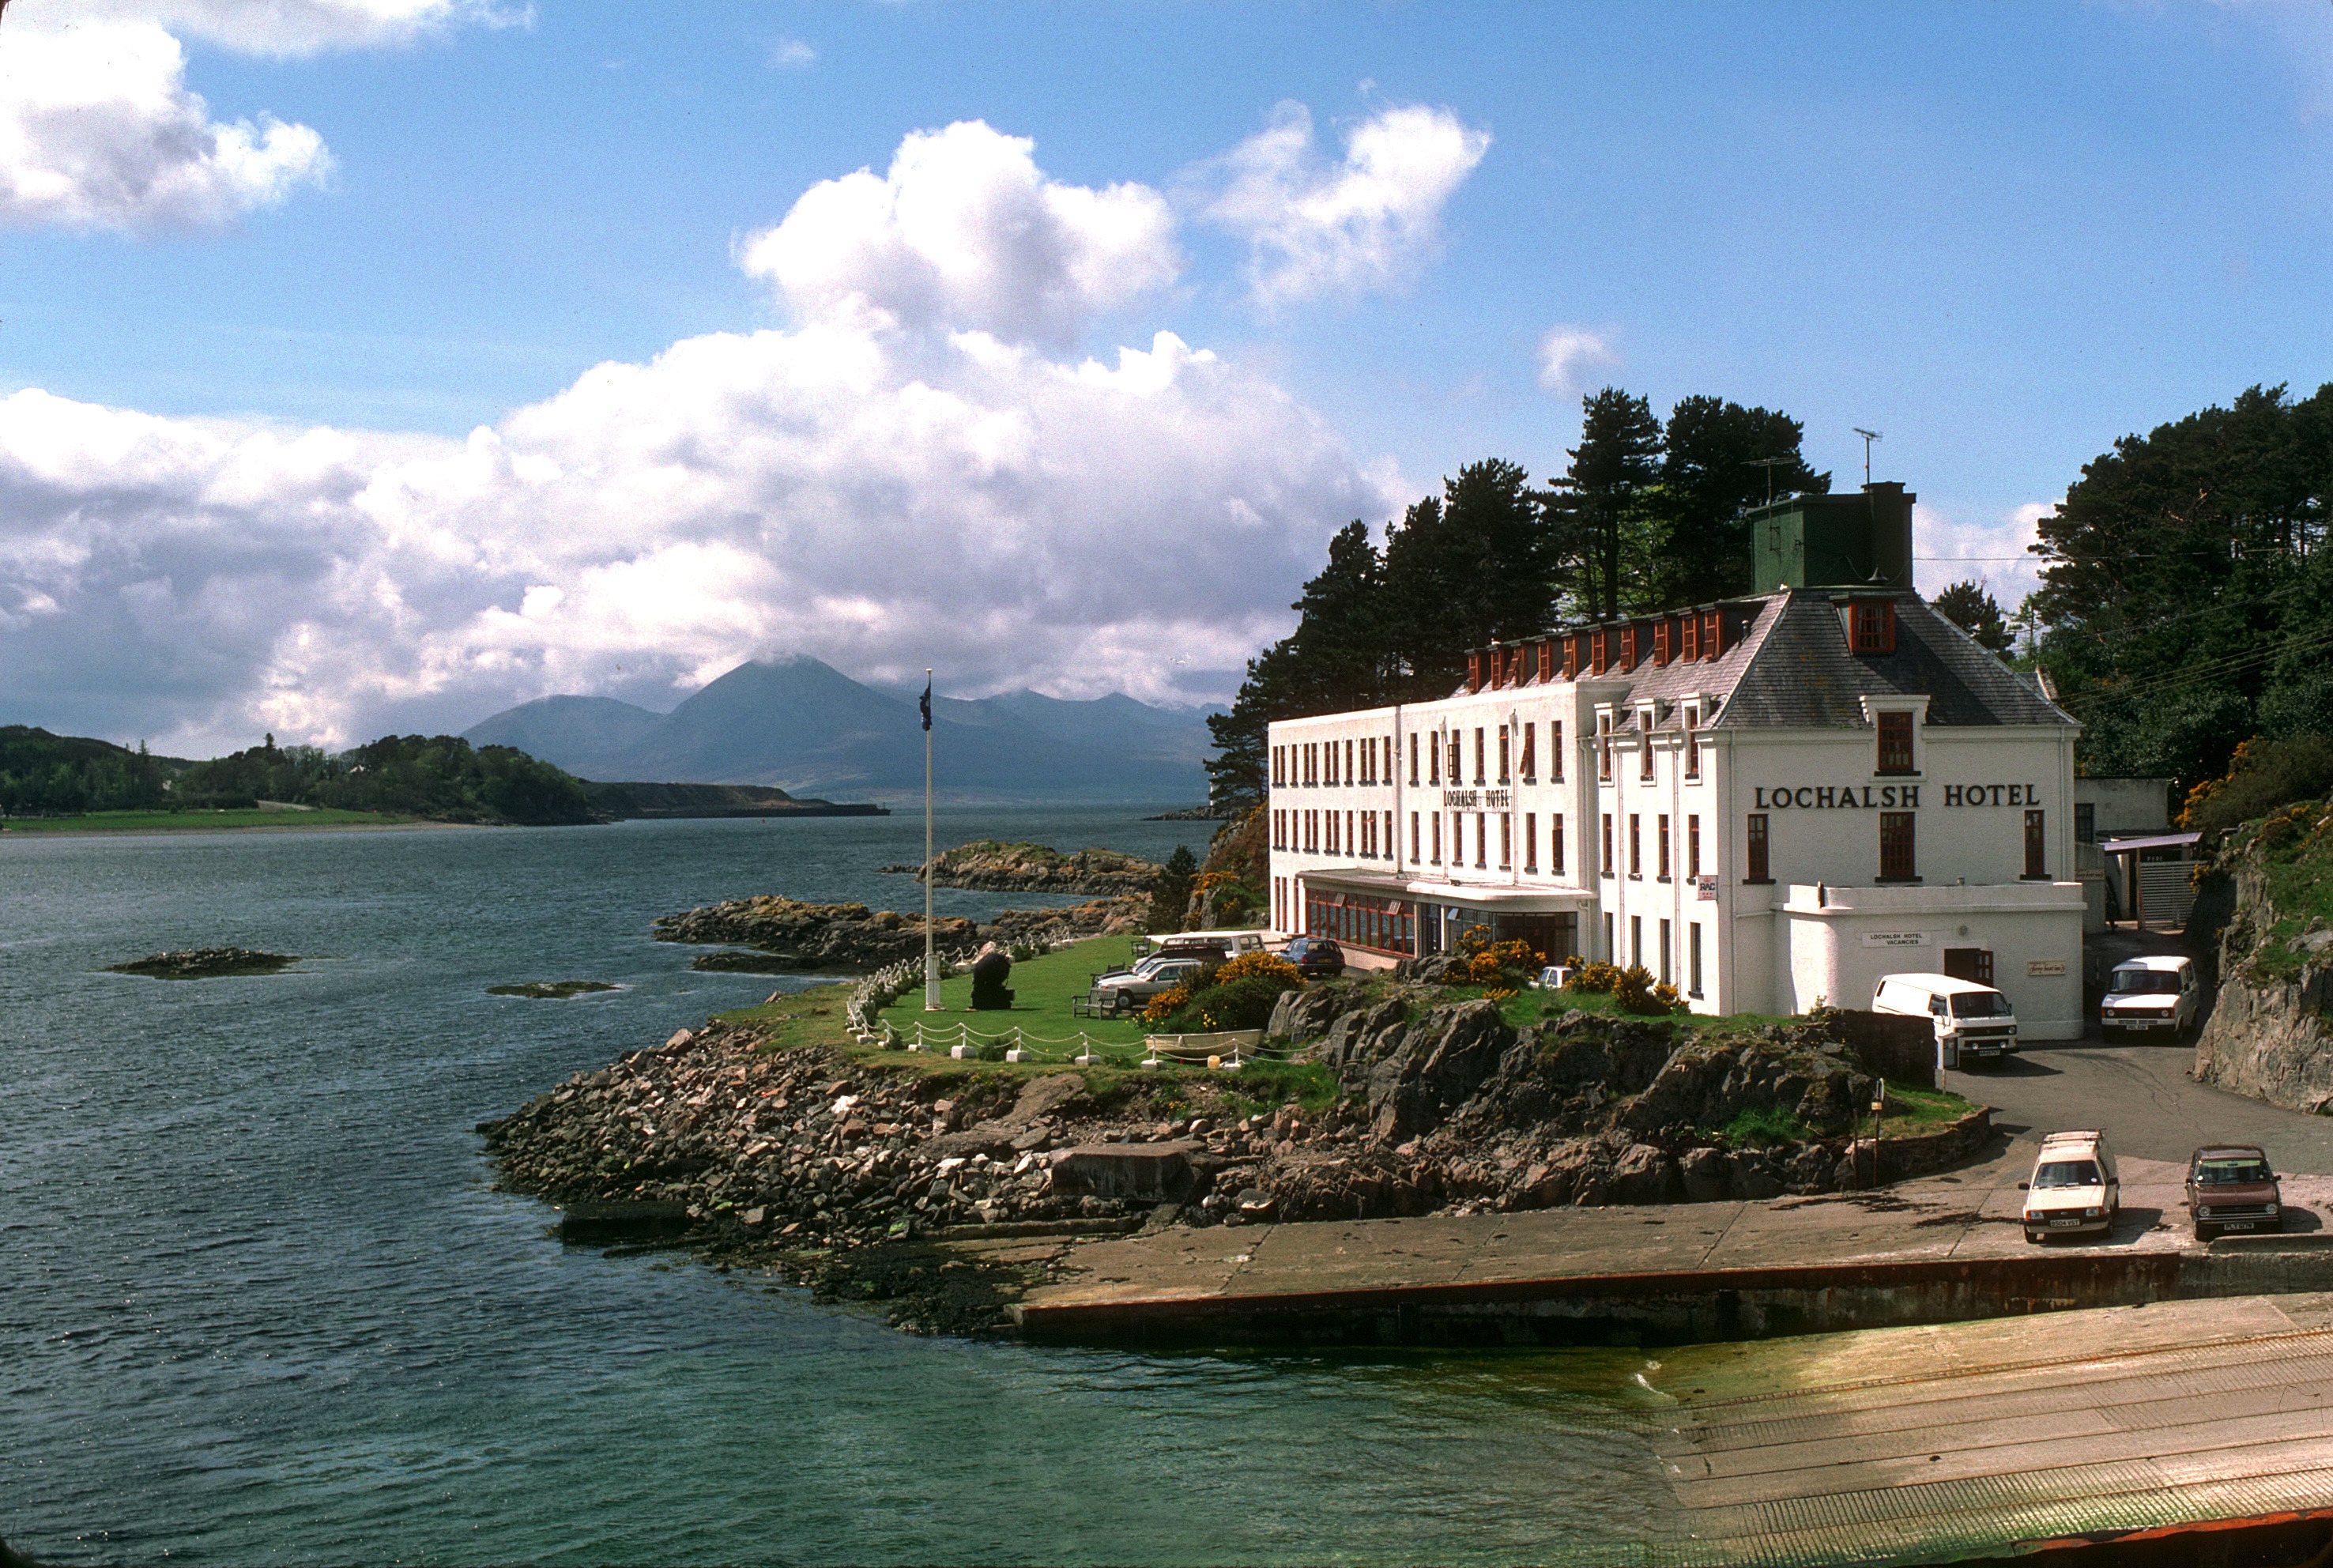 Kyle The lochalsh Hotel HD Wallpaper